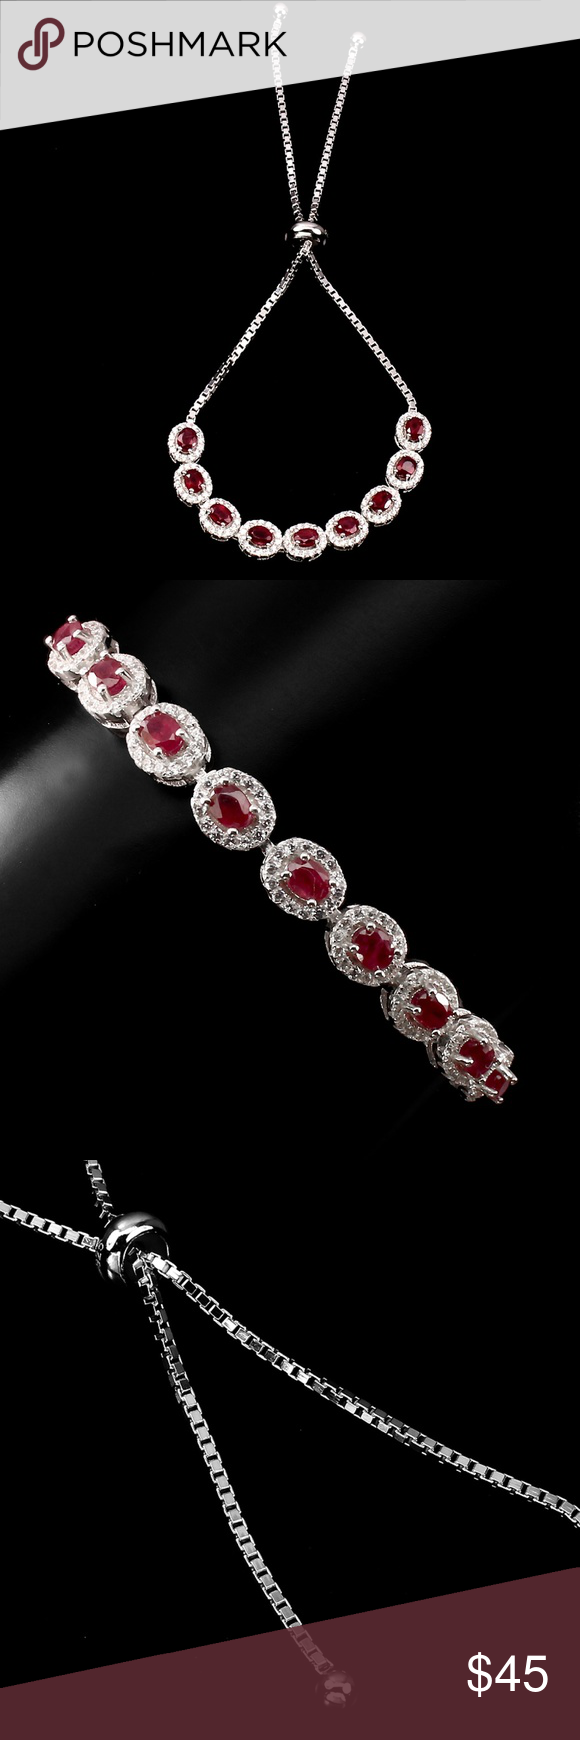 Handmade 5x8mm Faceted Natural Red Ruby jade perles Stretch Bracelet 7.5/""